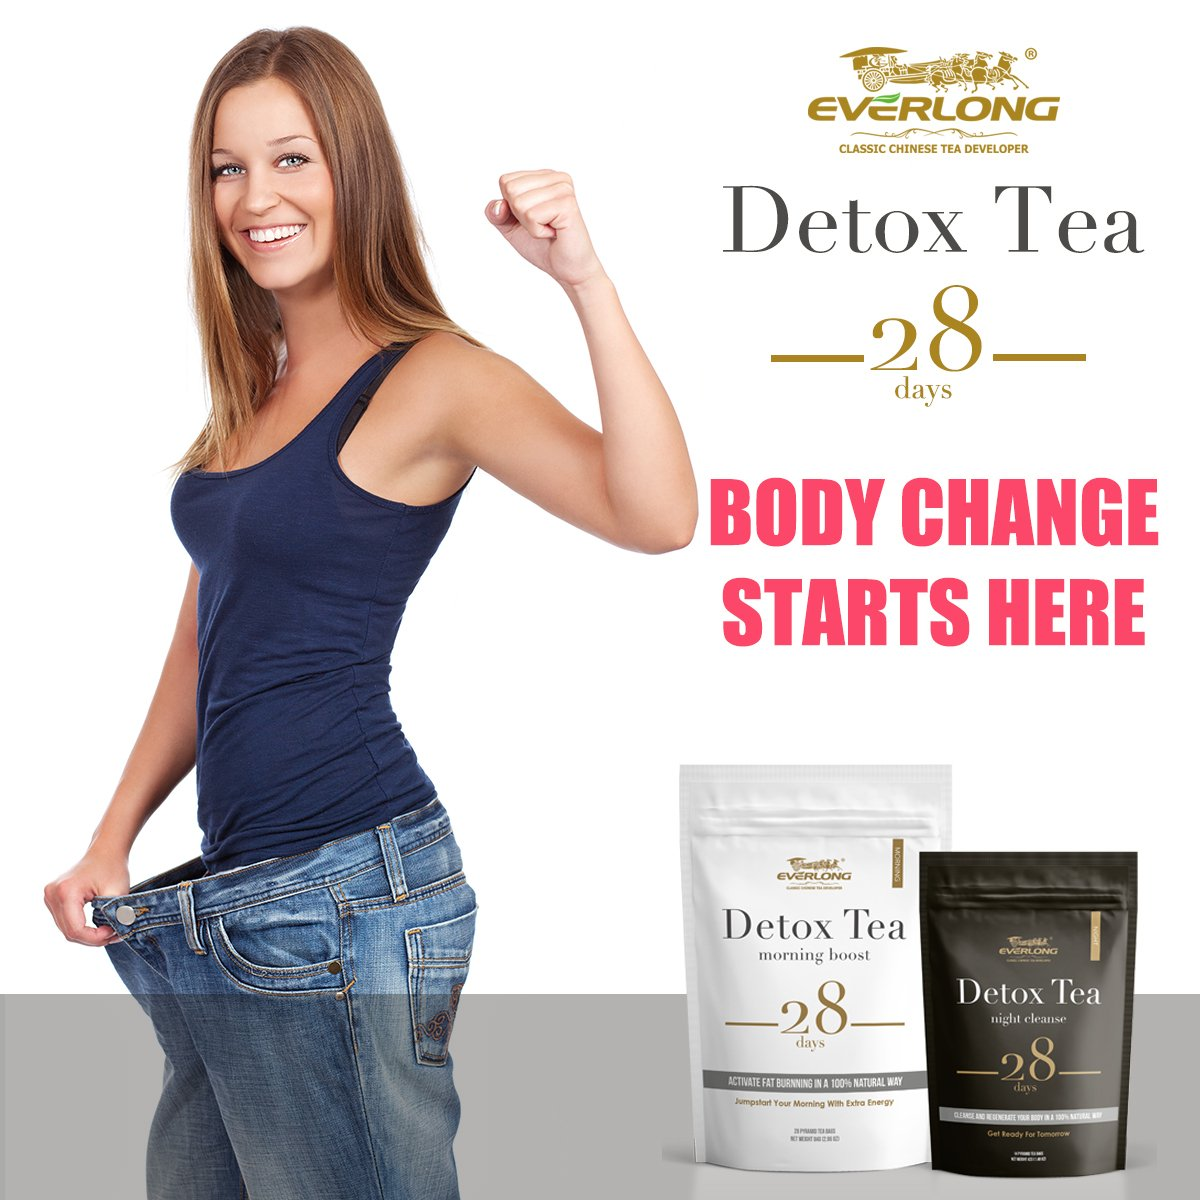 Detox Tea 28 Day Ultimate Teatox - Burn Fat and Boost Your Energy, Colon Cleanse and Flat Belly, Restore Your Body Natural Balance and Accelerate Weight Loss - Easy Brewing and Taste Delicious by EVERLONG (Image #6)